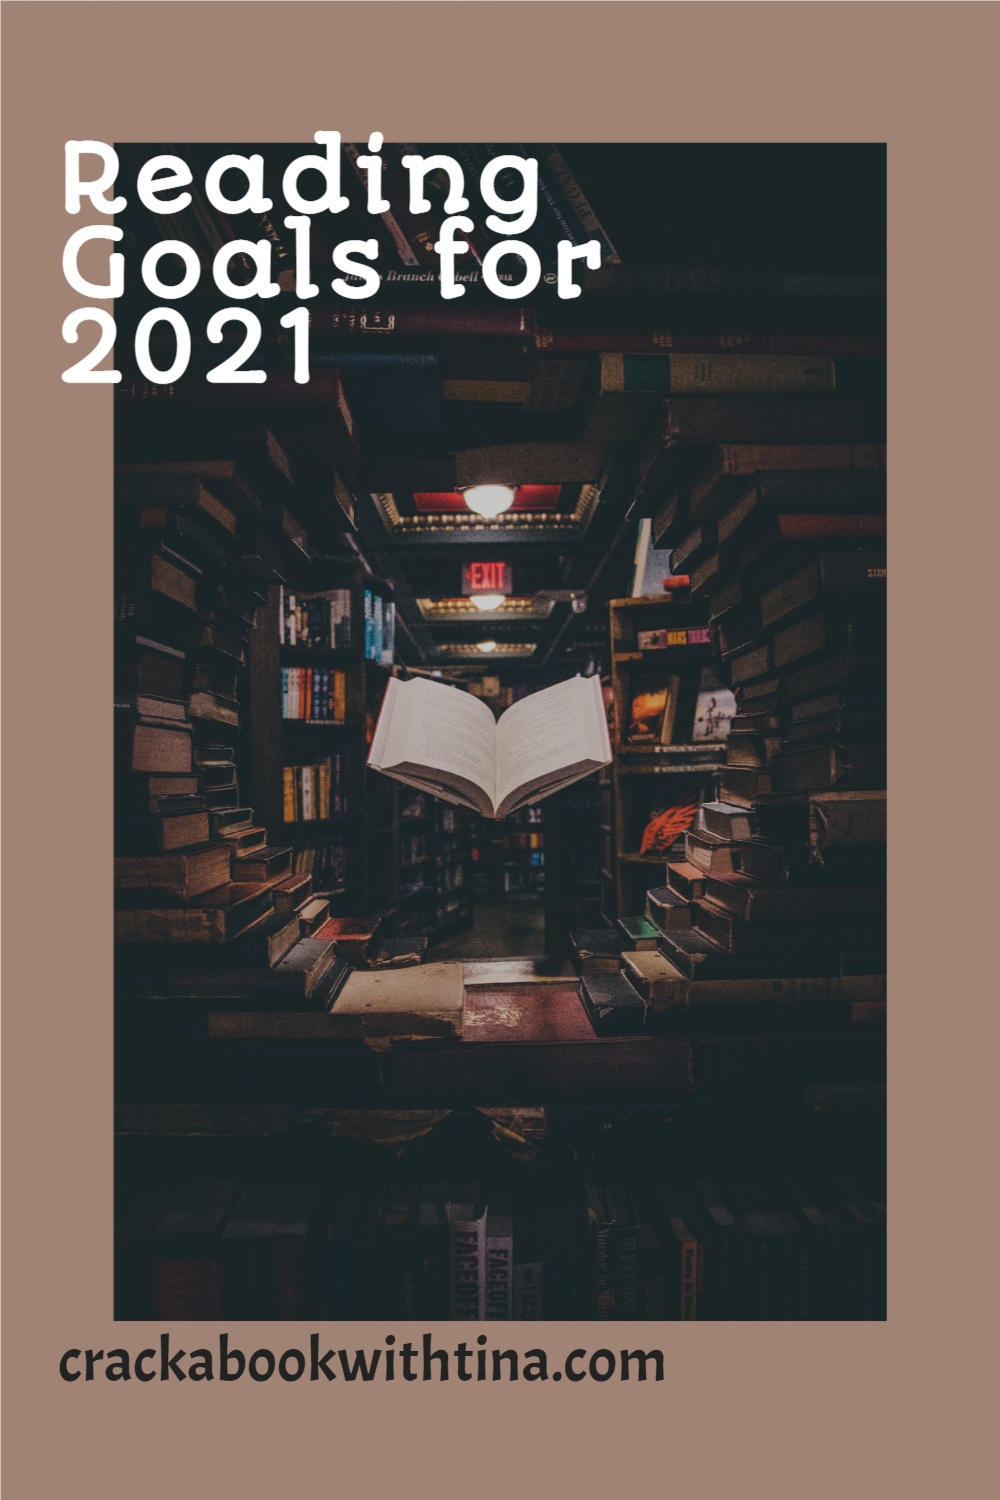 Reading Booktube/Book blog Goals for 2021